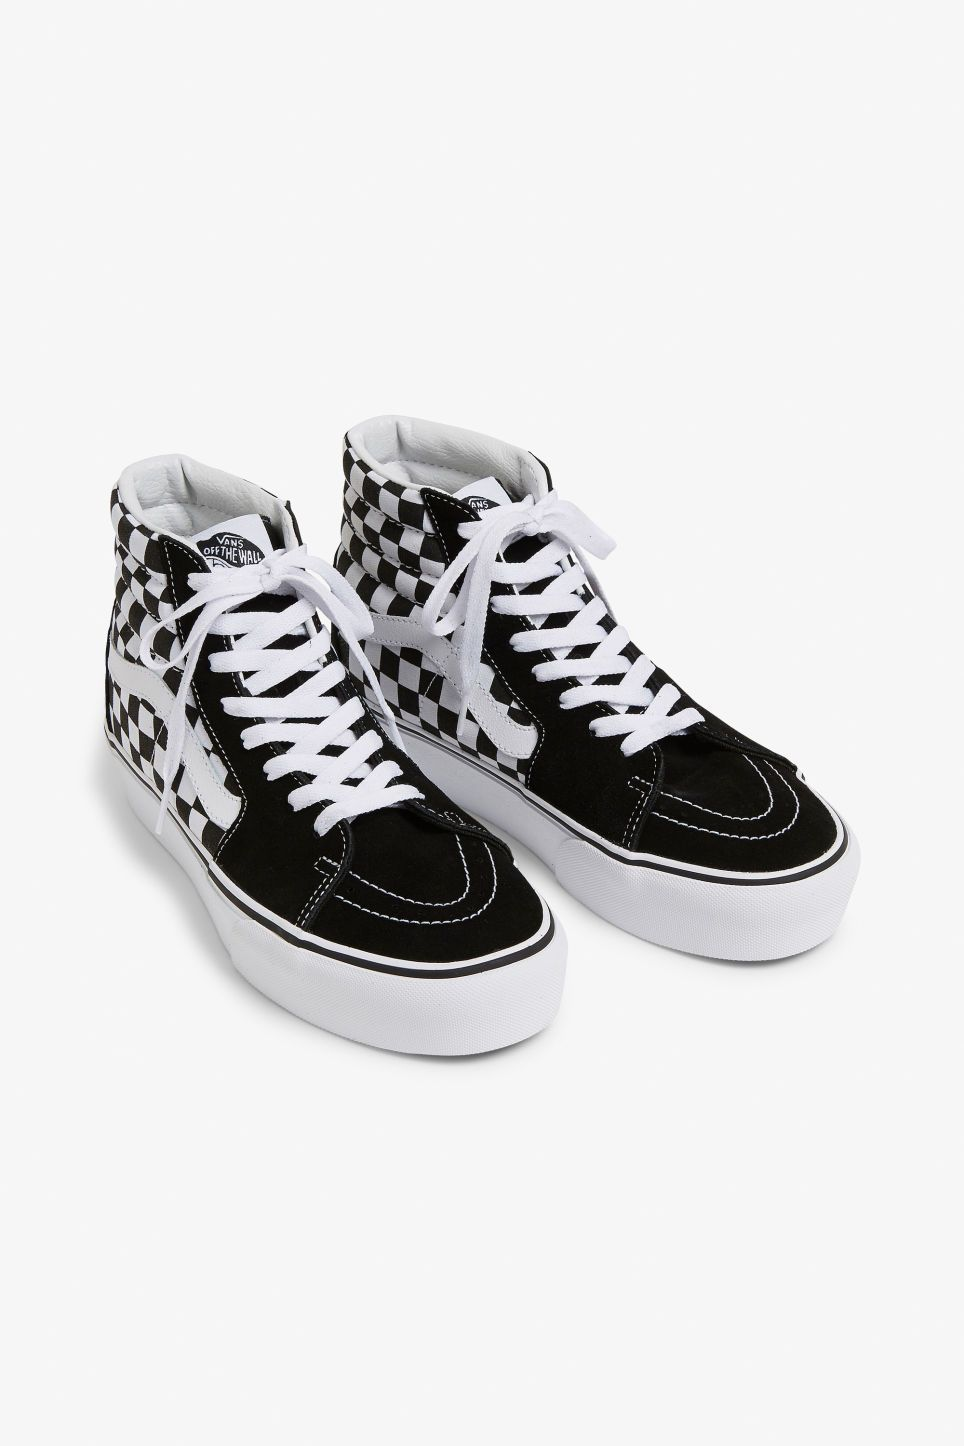 0cbfeaf4119 Vans SK8-HI platform 2.0 - A pair of fab lace-up Vans featuring a high top,  the iconic side stripe, heel cushioning and padded collars for extra  comfort.